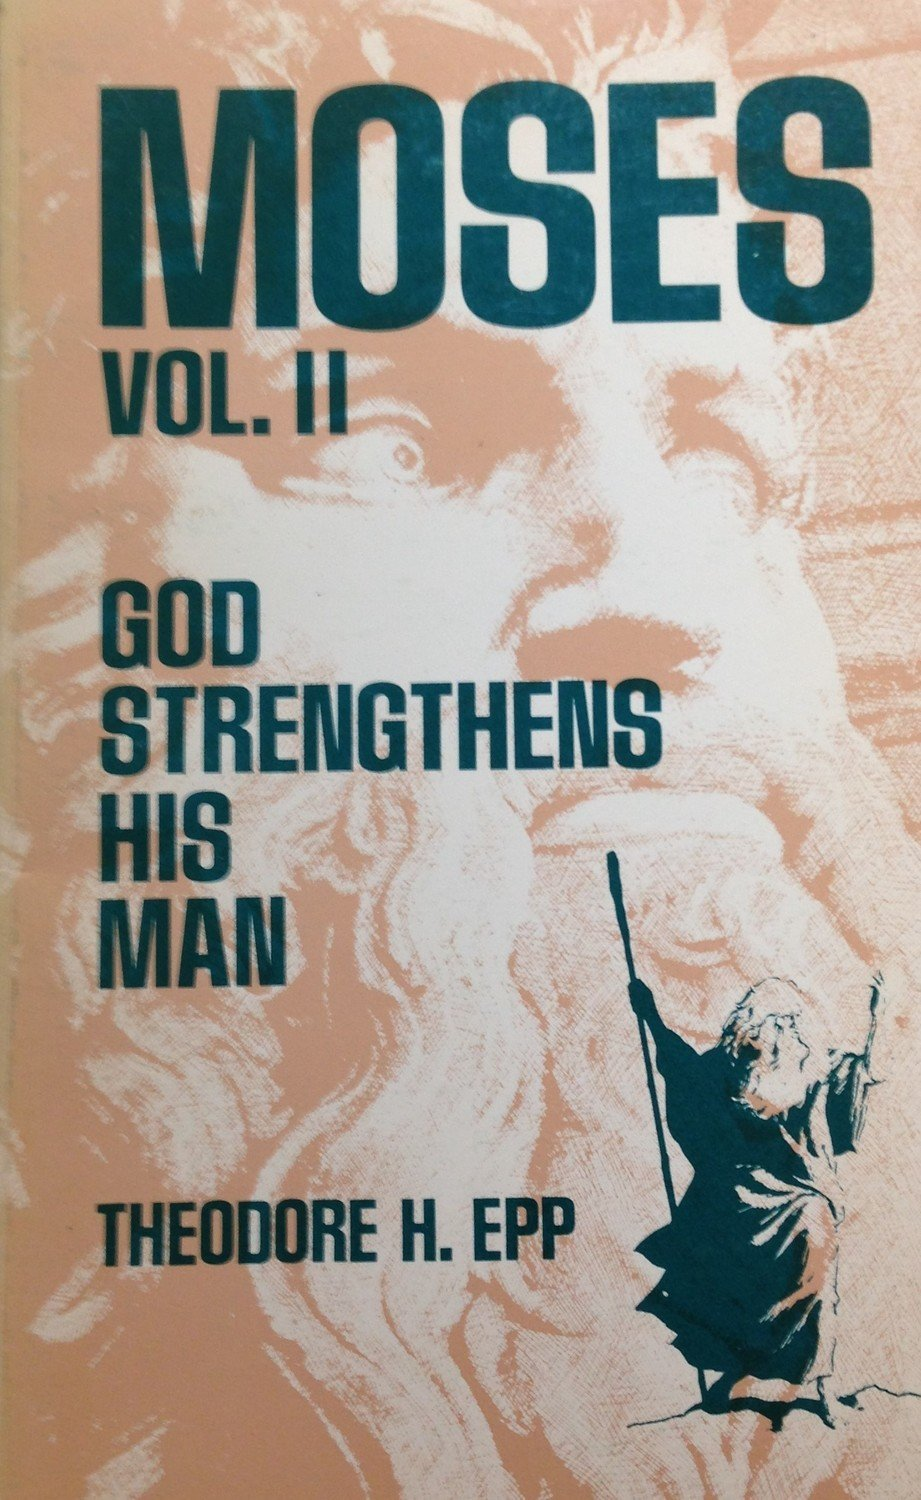 Moses Volume II:  God Strengthens His Man by Theodore H. Epp (USED)